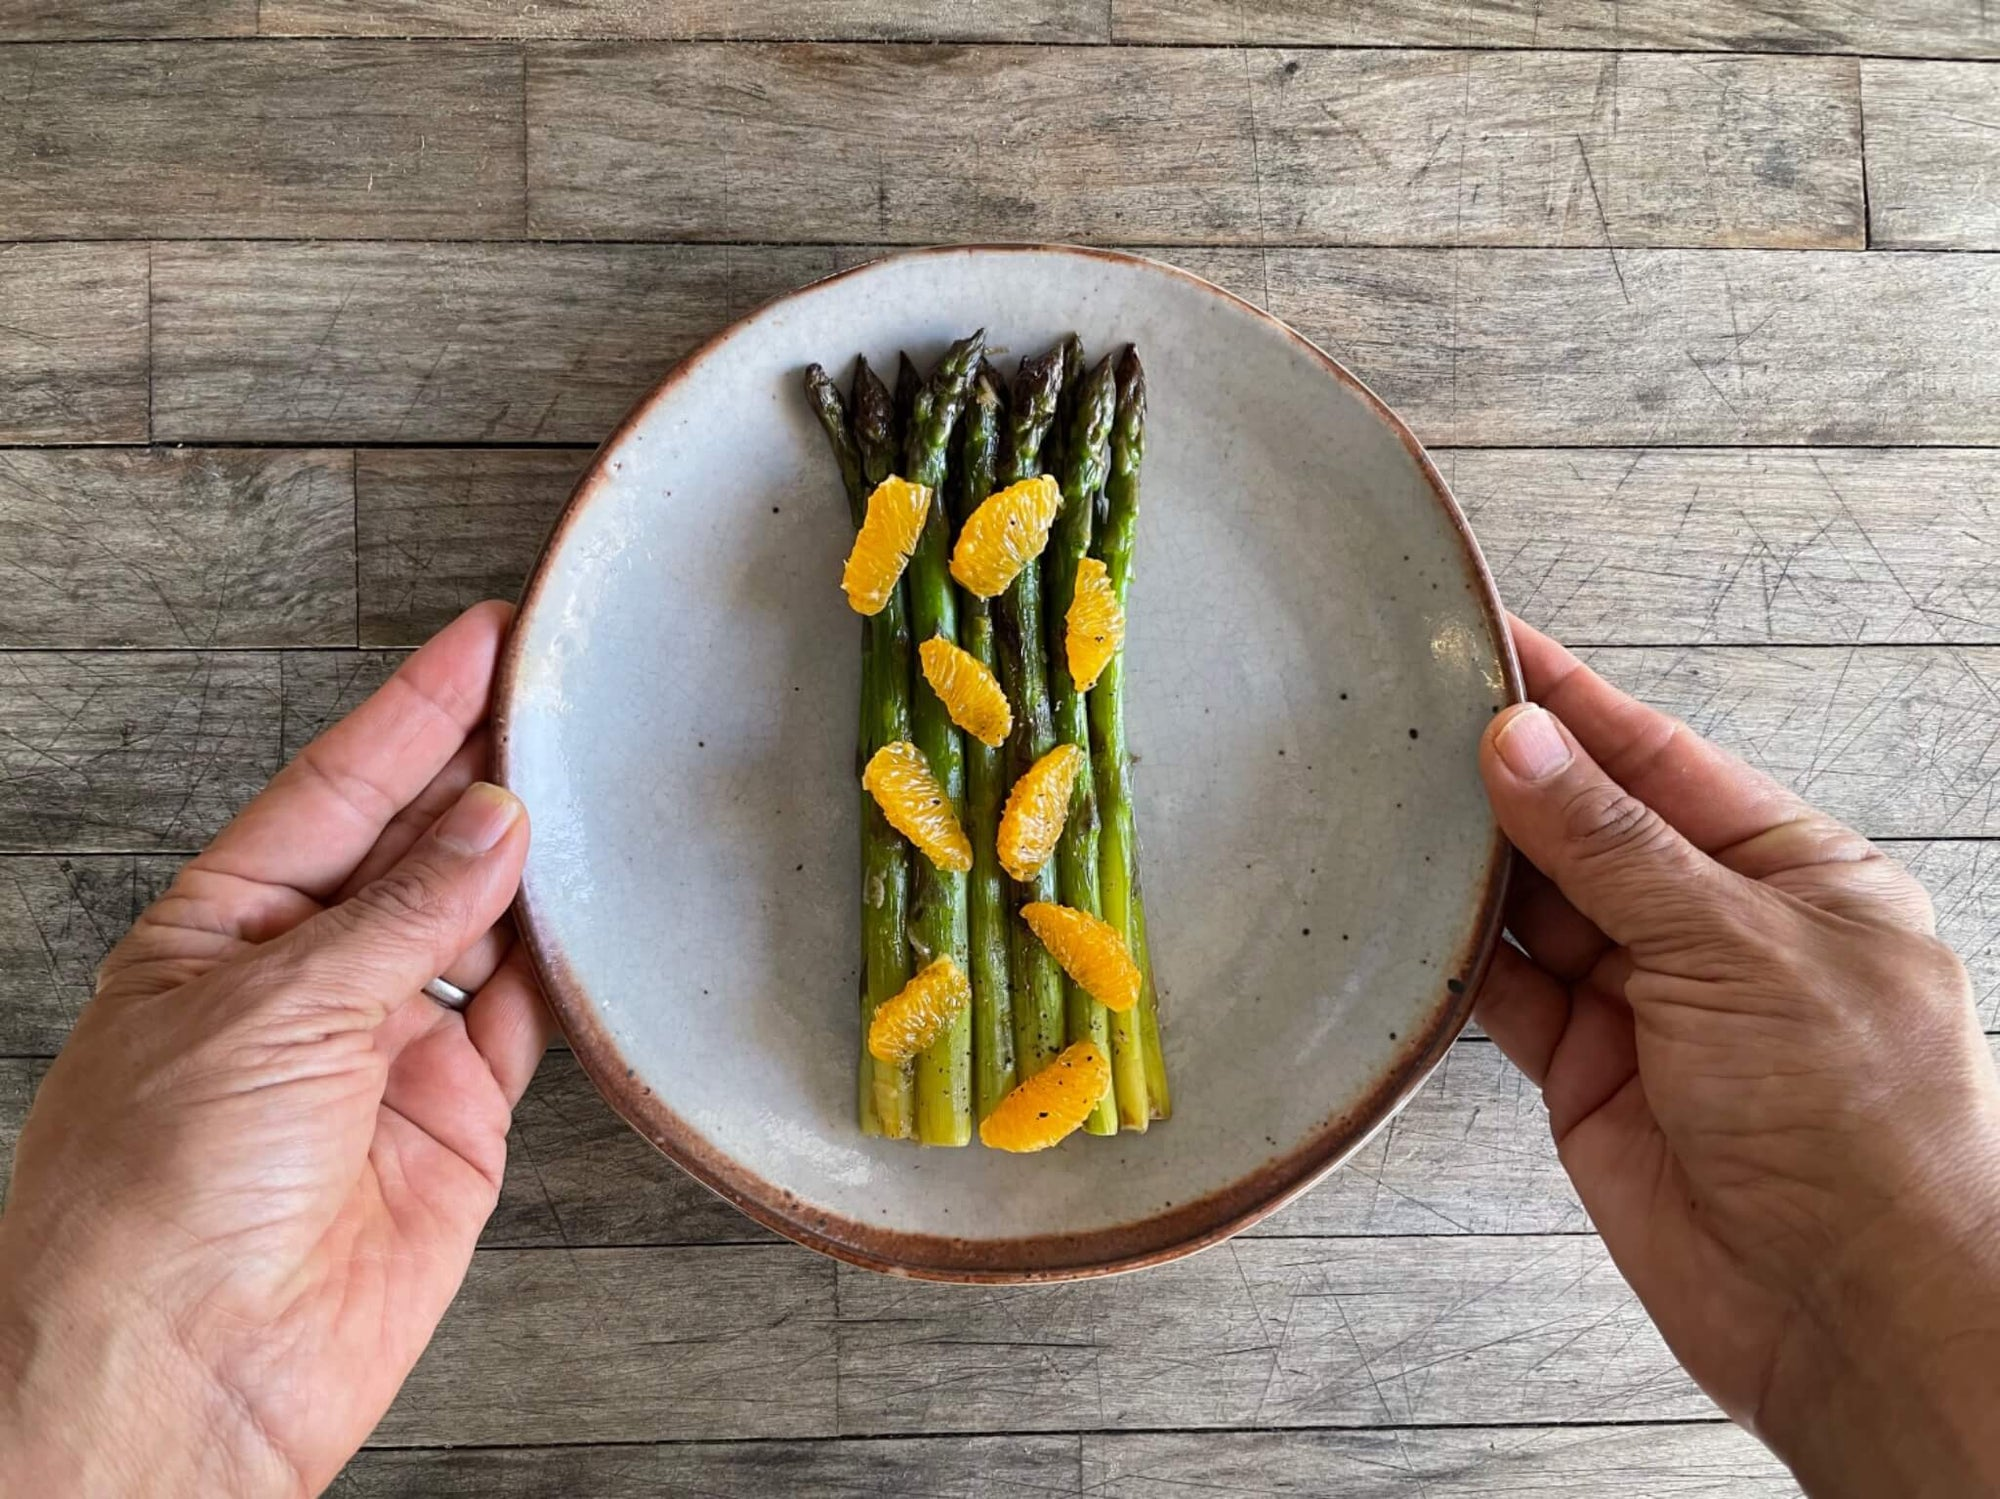 Pan Roasted Asparagus with Mandarins